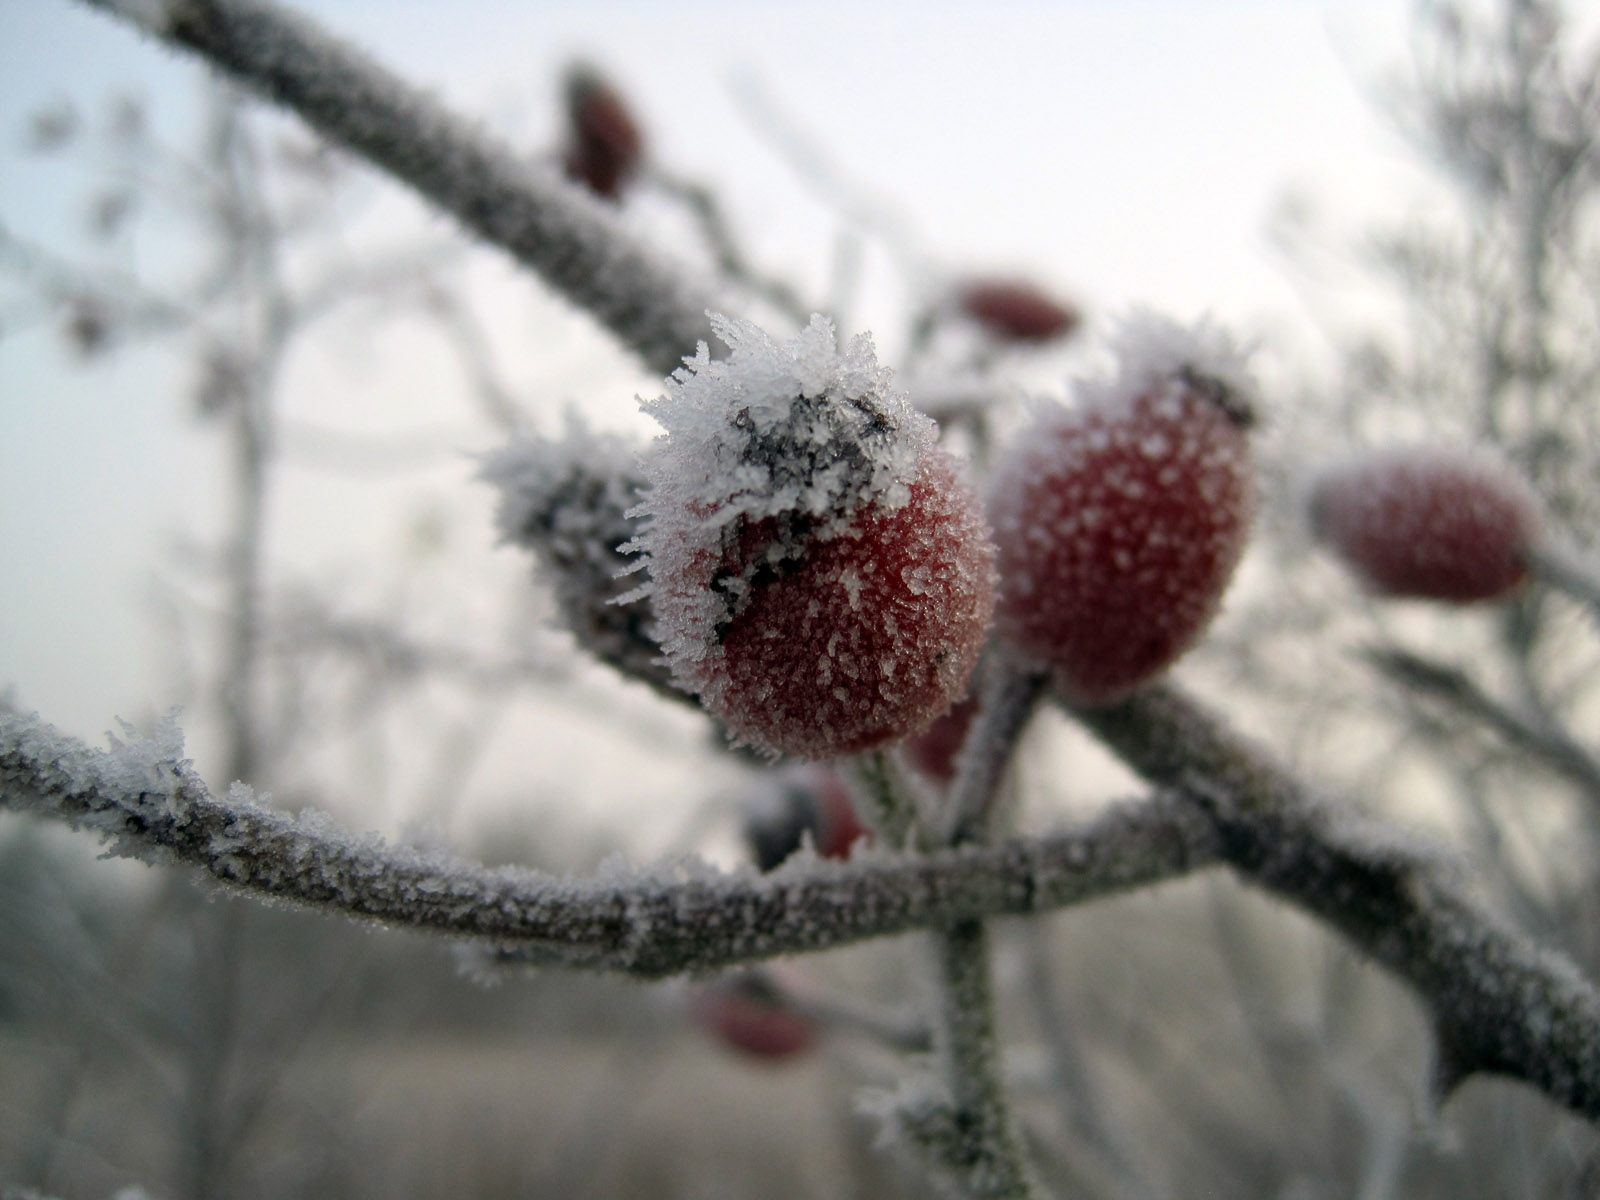 Frozen-fruits.jpg